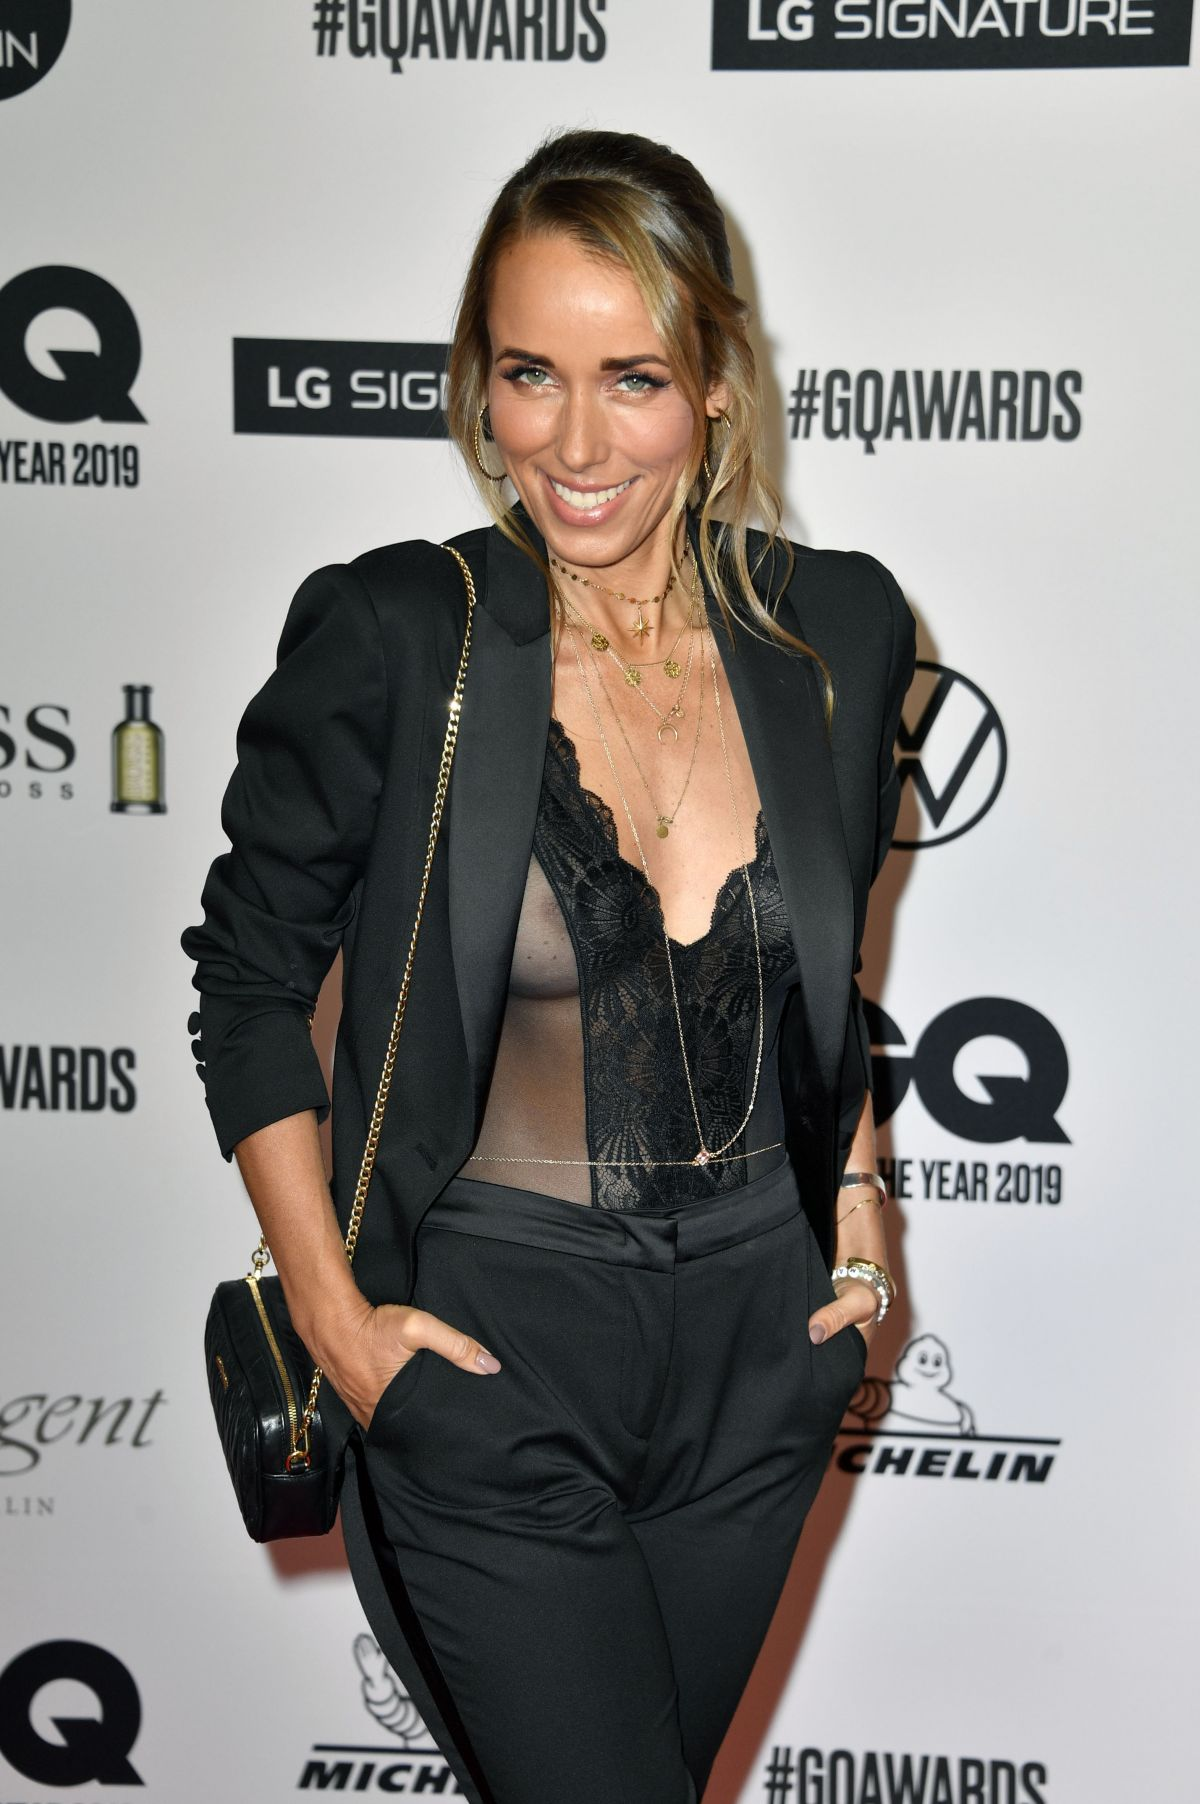 Annemarie Carpendale At the 2019 GQ Men of the Year Awards